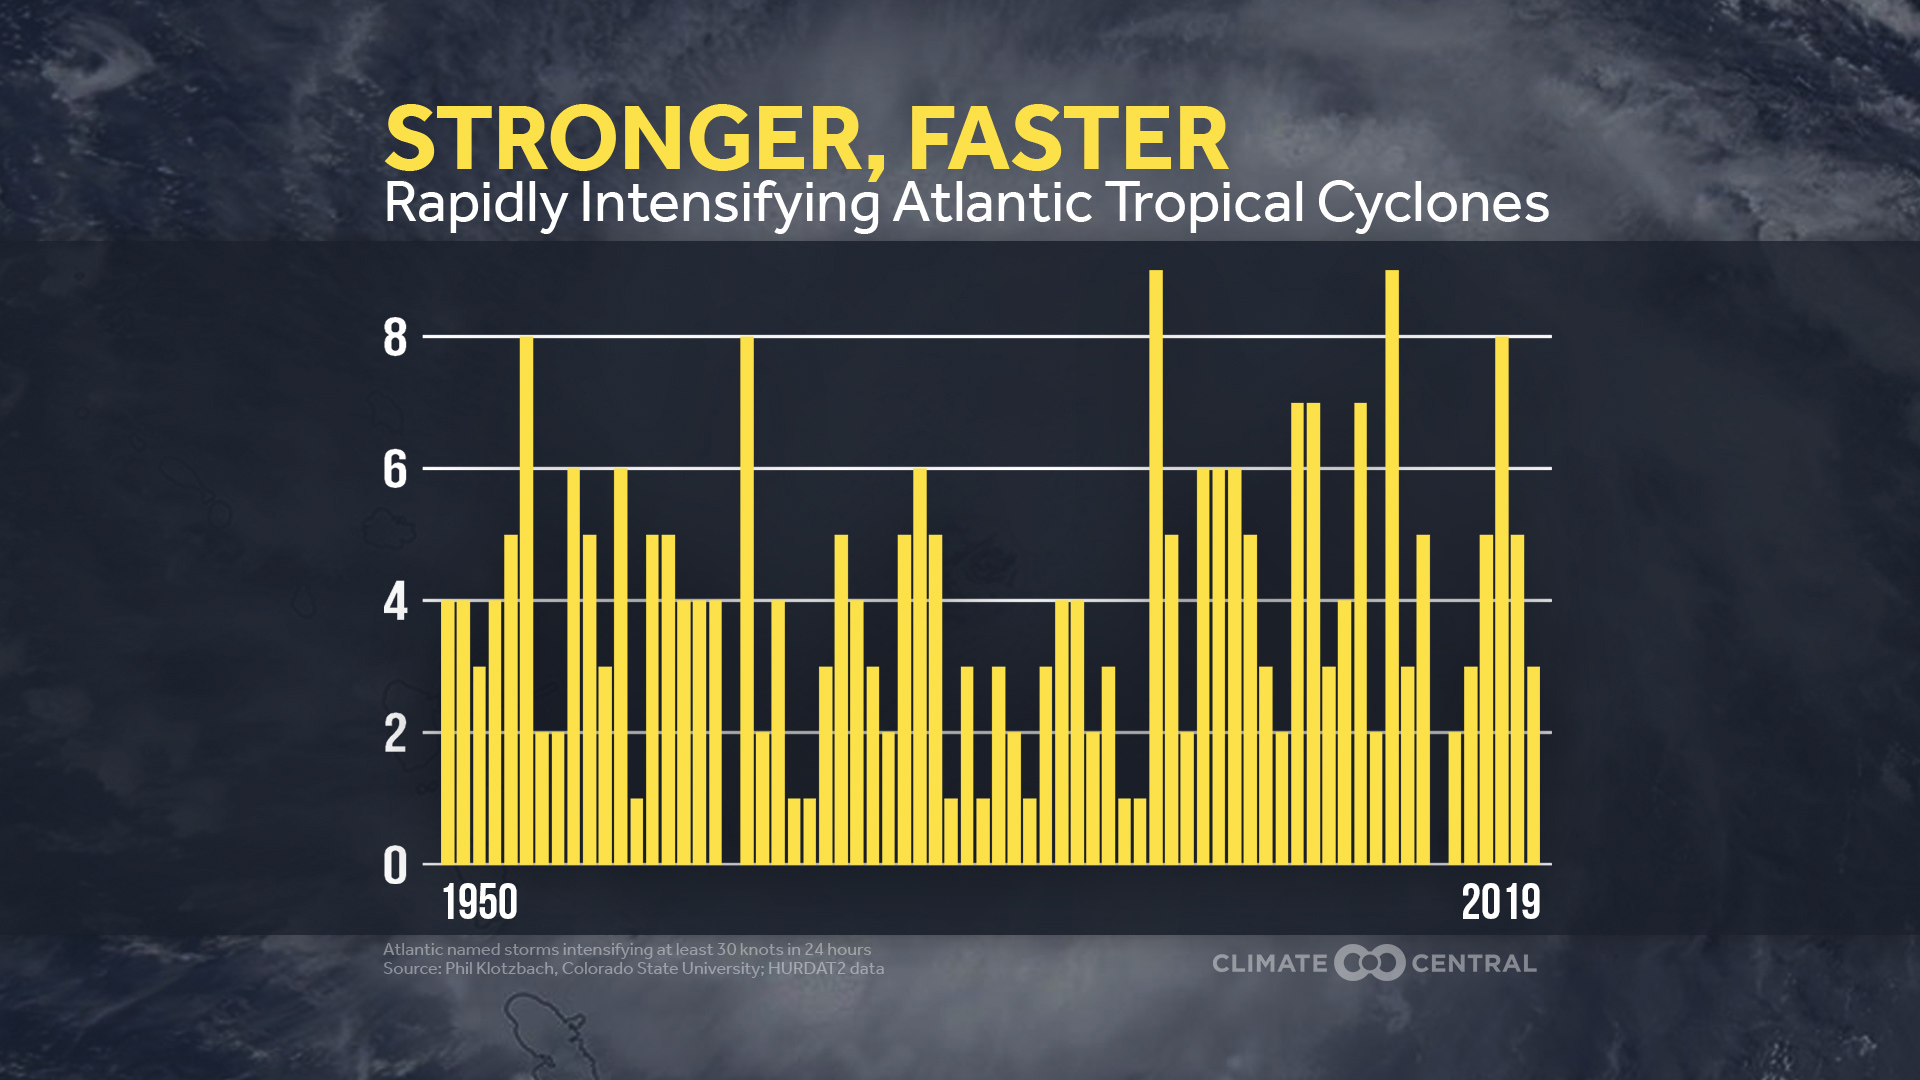 Graph showing how quickly the speed at which storms intensify over a 24 hour period from 1980 to 2017 and how this is increasing